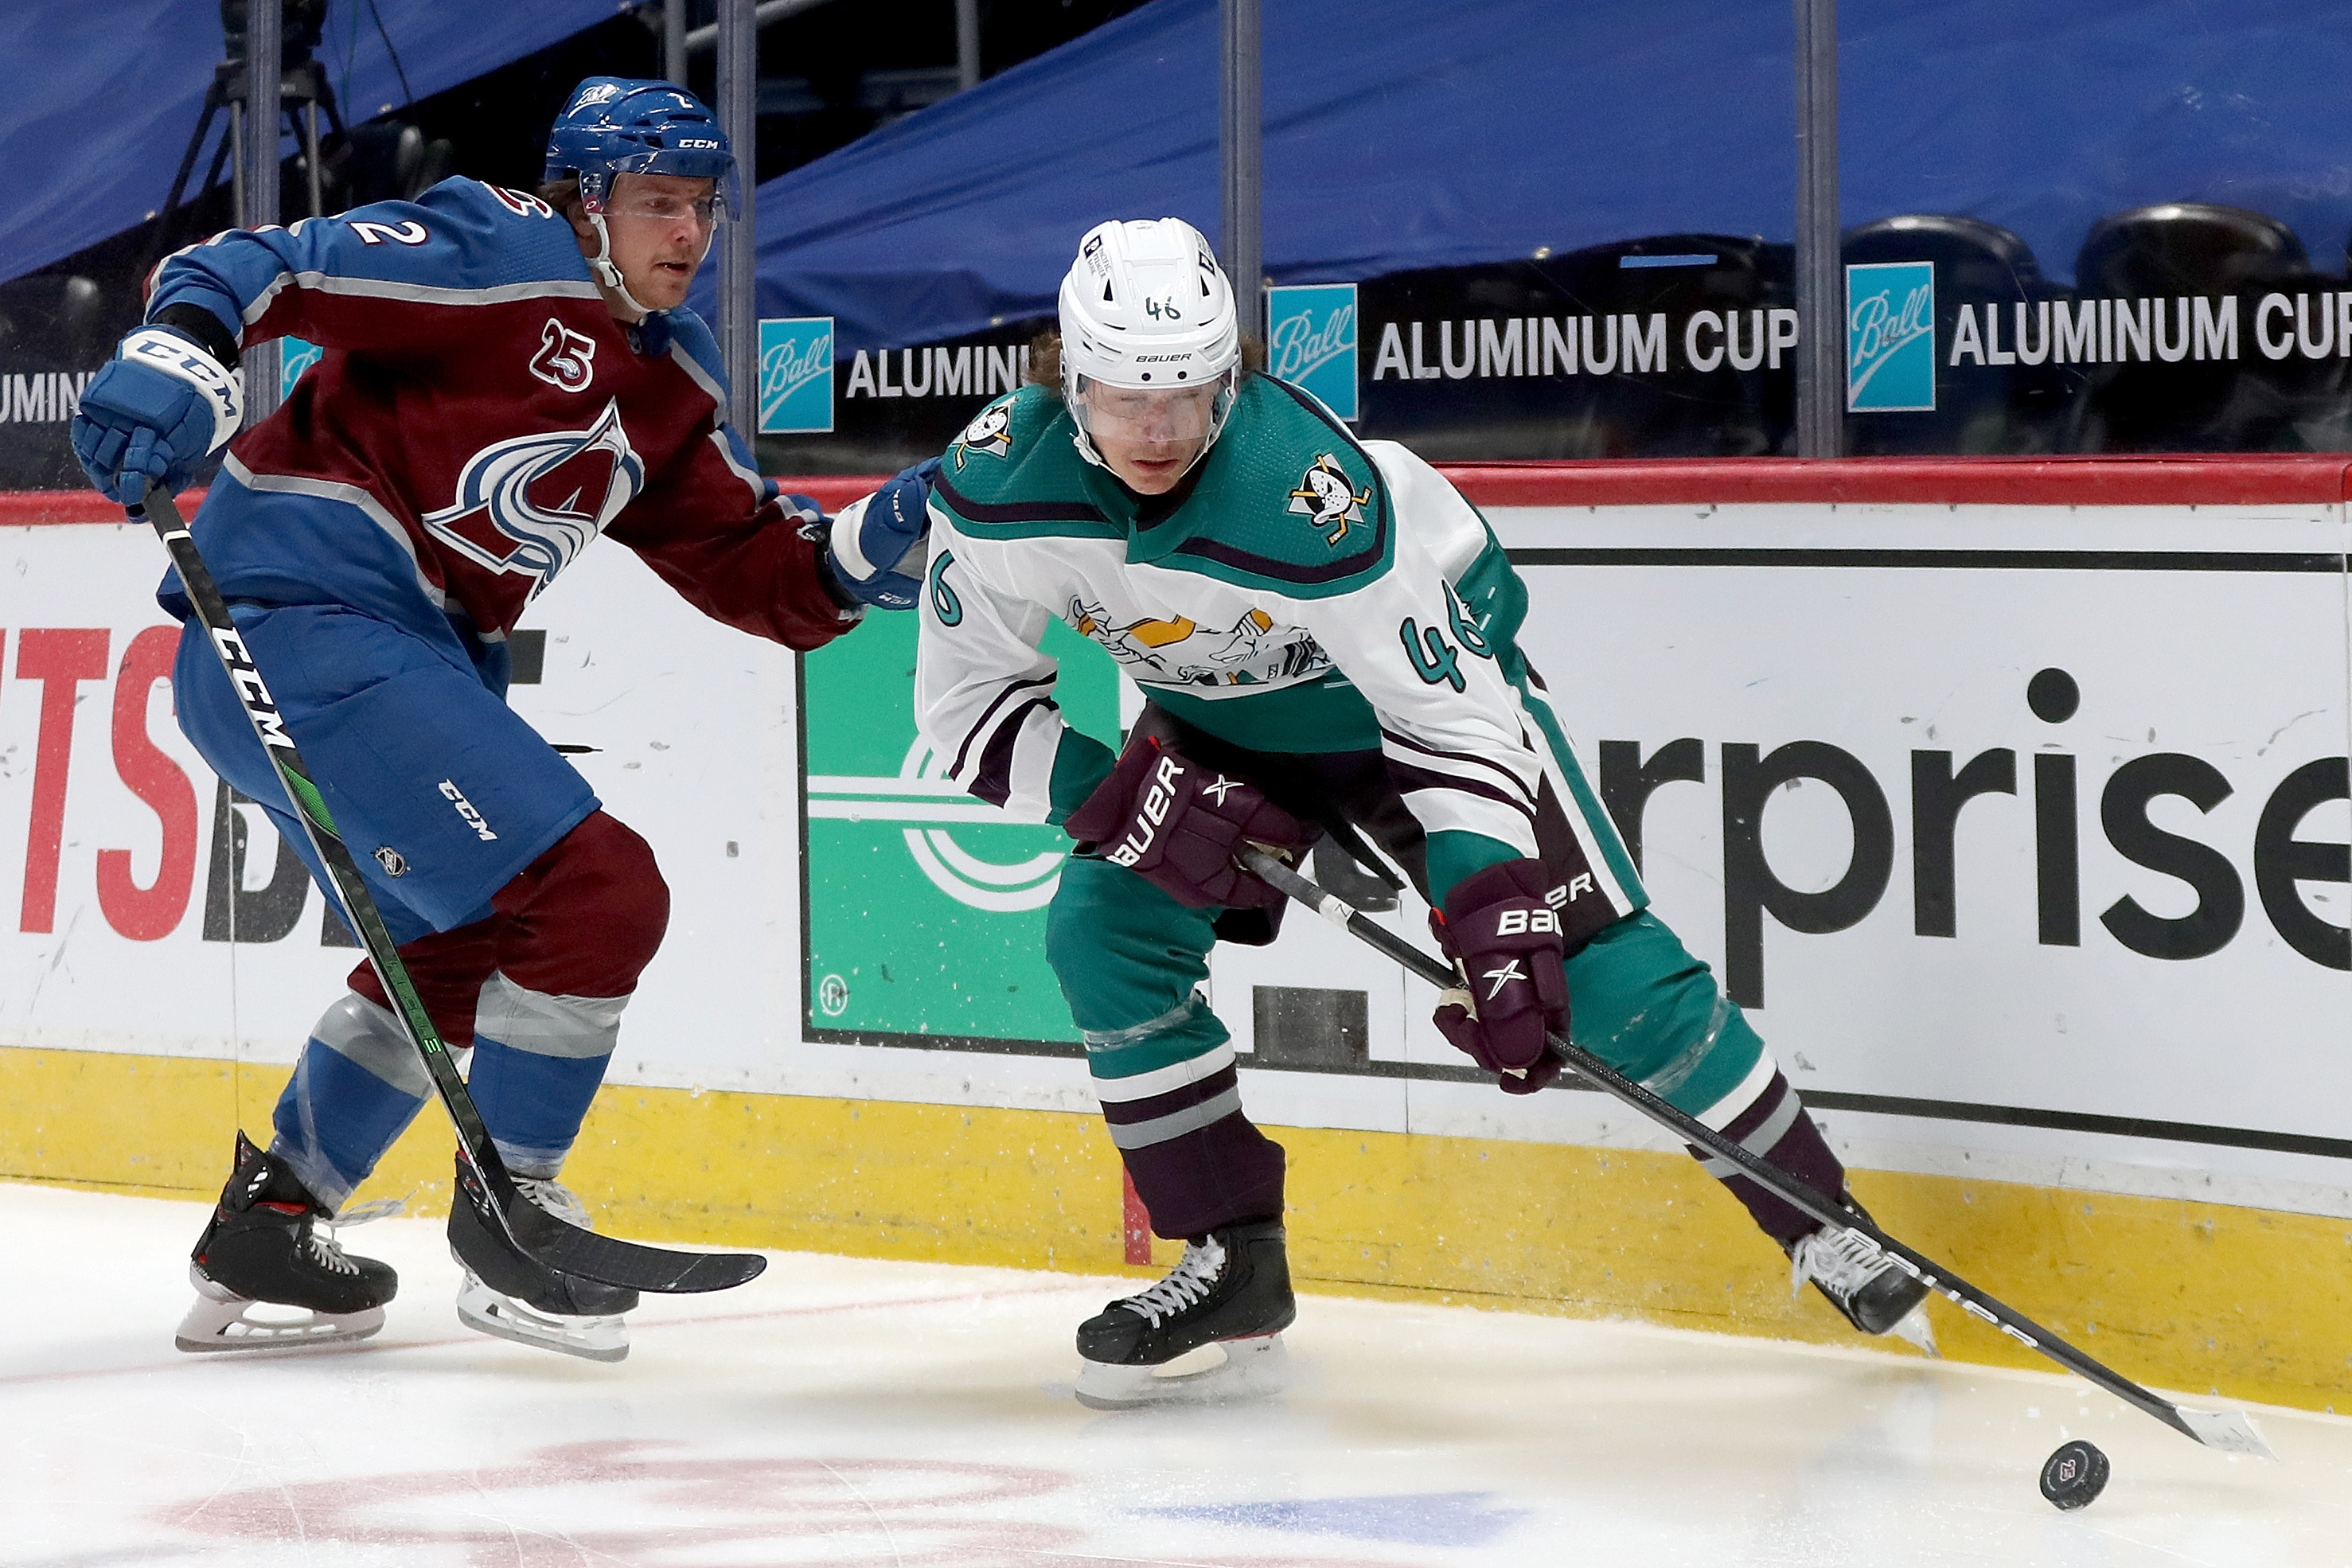 Trevor Zegras #46 of the Anaheim Ducks brings the puck off the boards against Dan Renouf #2 of the Colorado Avalanche in the first period at Ball Arena on March 16, 2021 in Denver, Colorado.